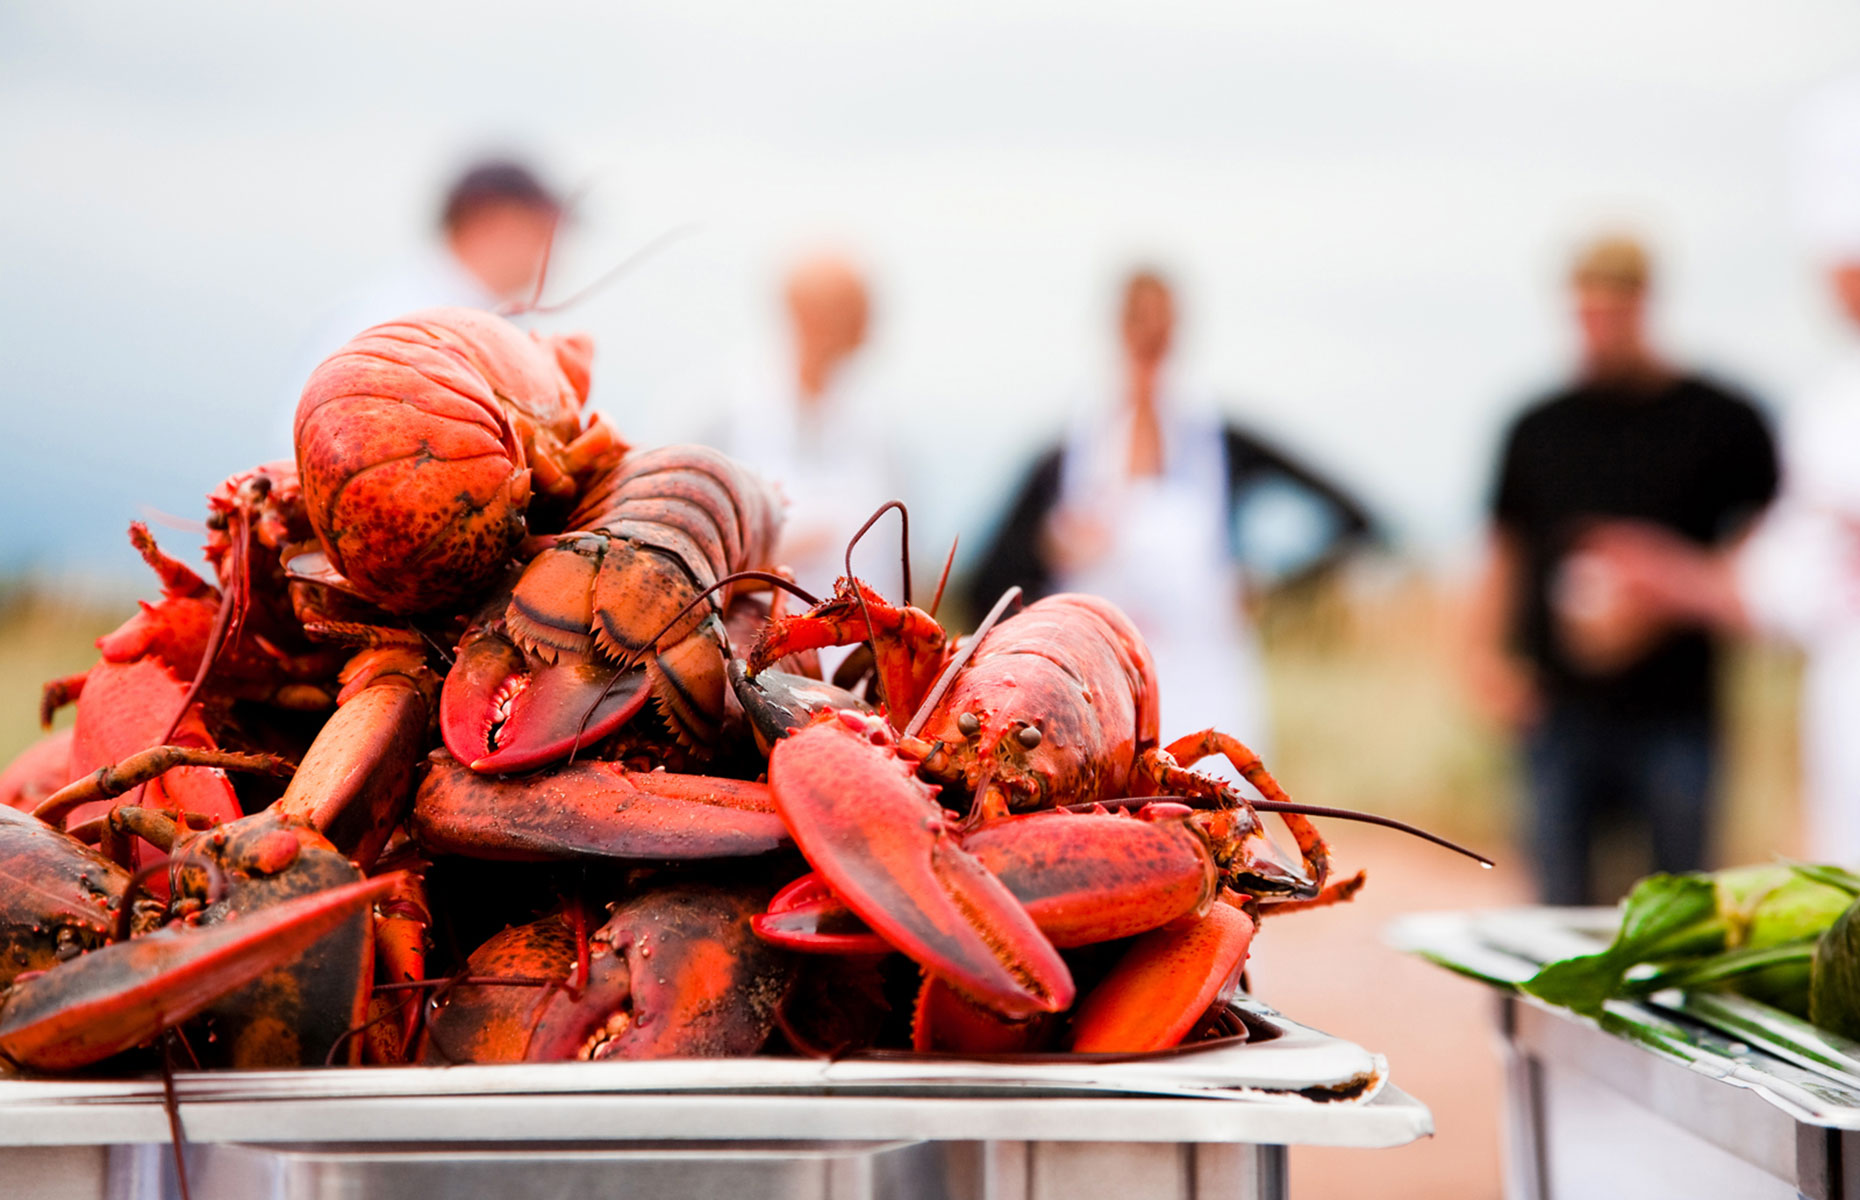 Lobster is available year round on Prince Edward Island